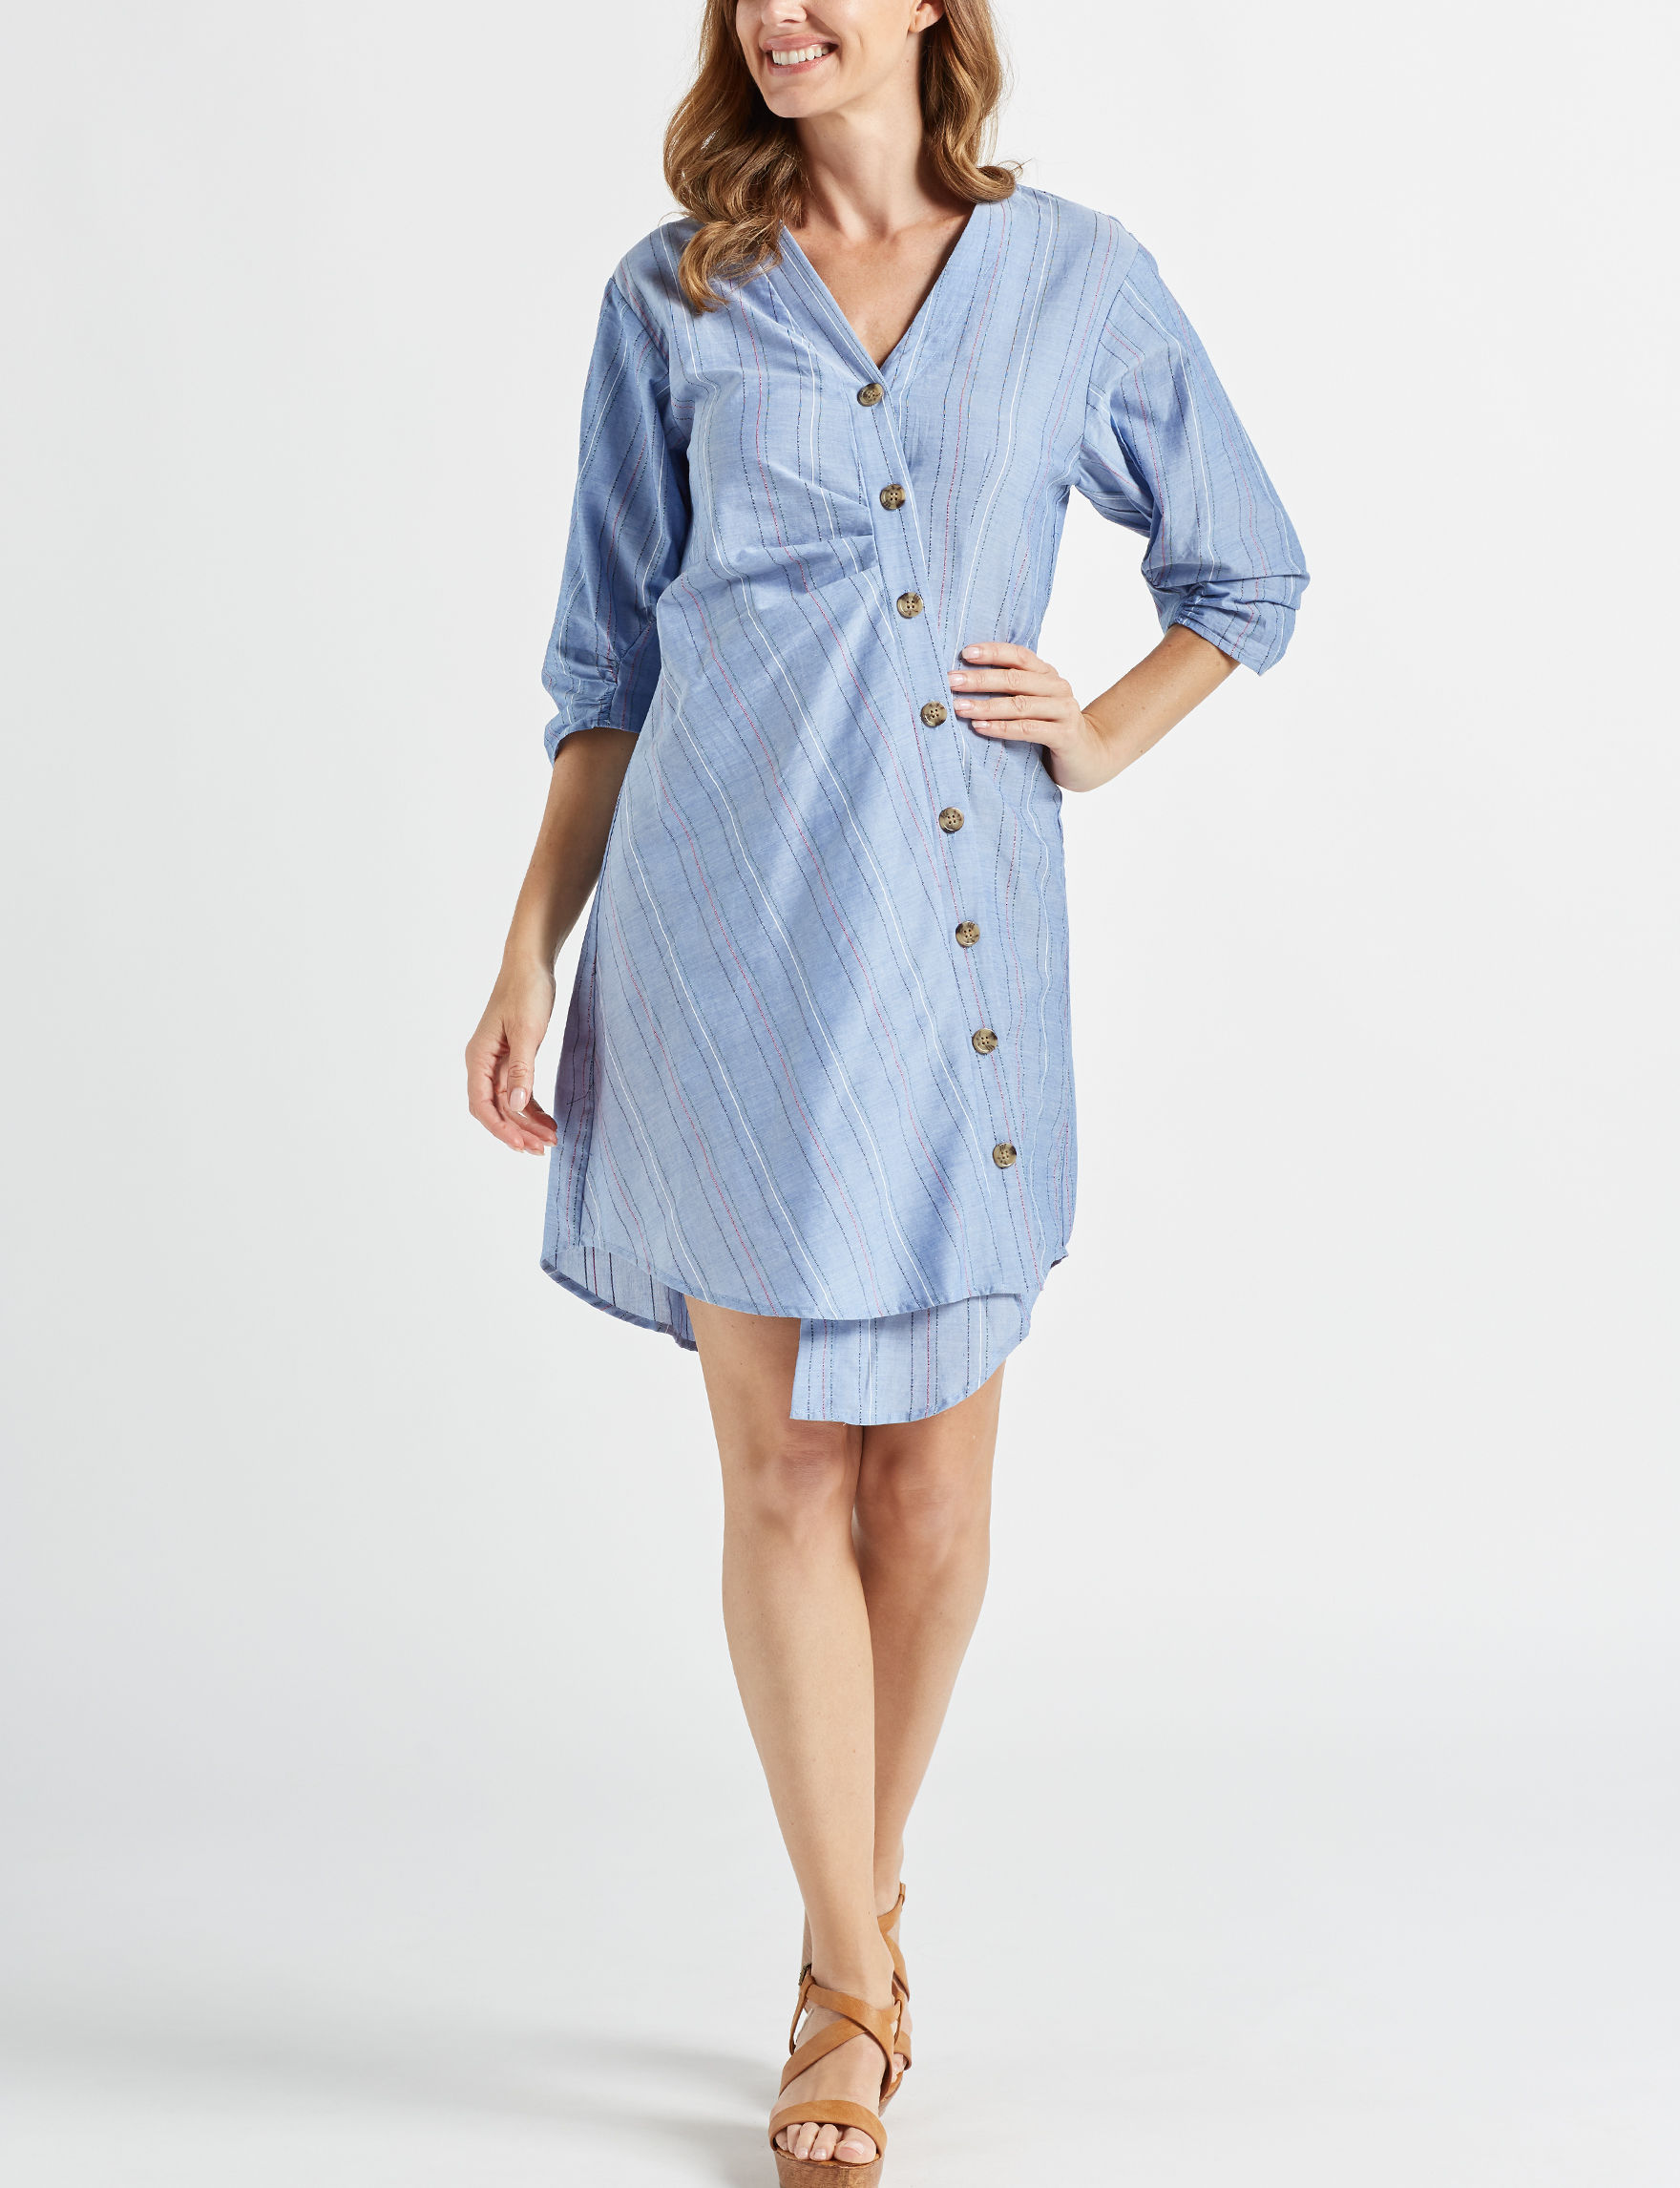 Beige by ECI Blue Everyday & Casual Shift Dresses